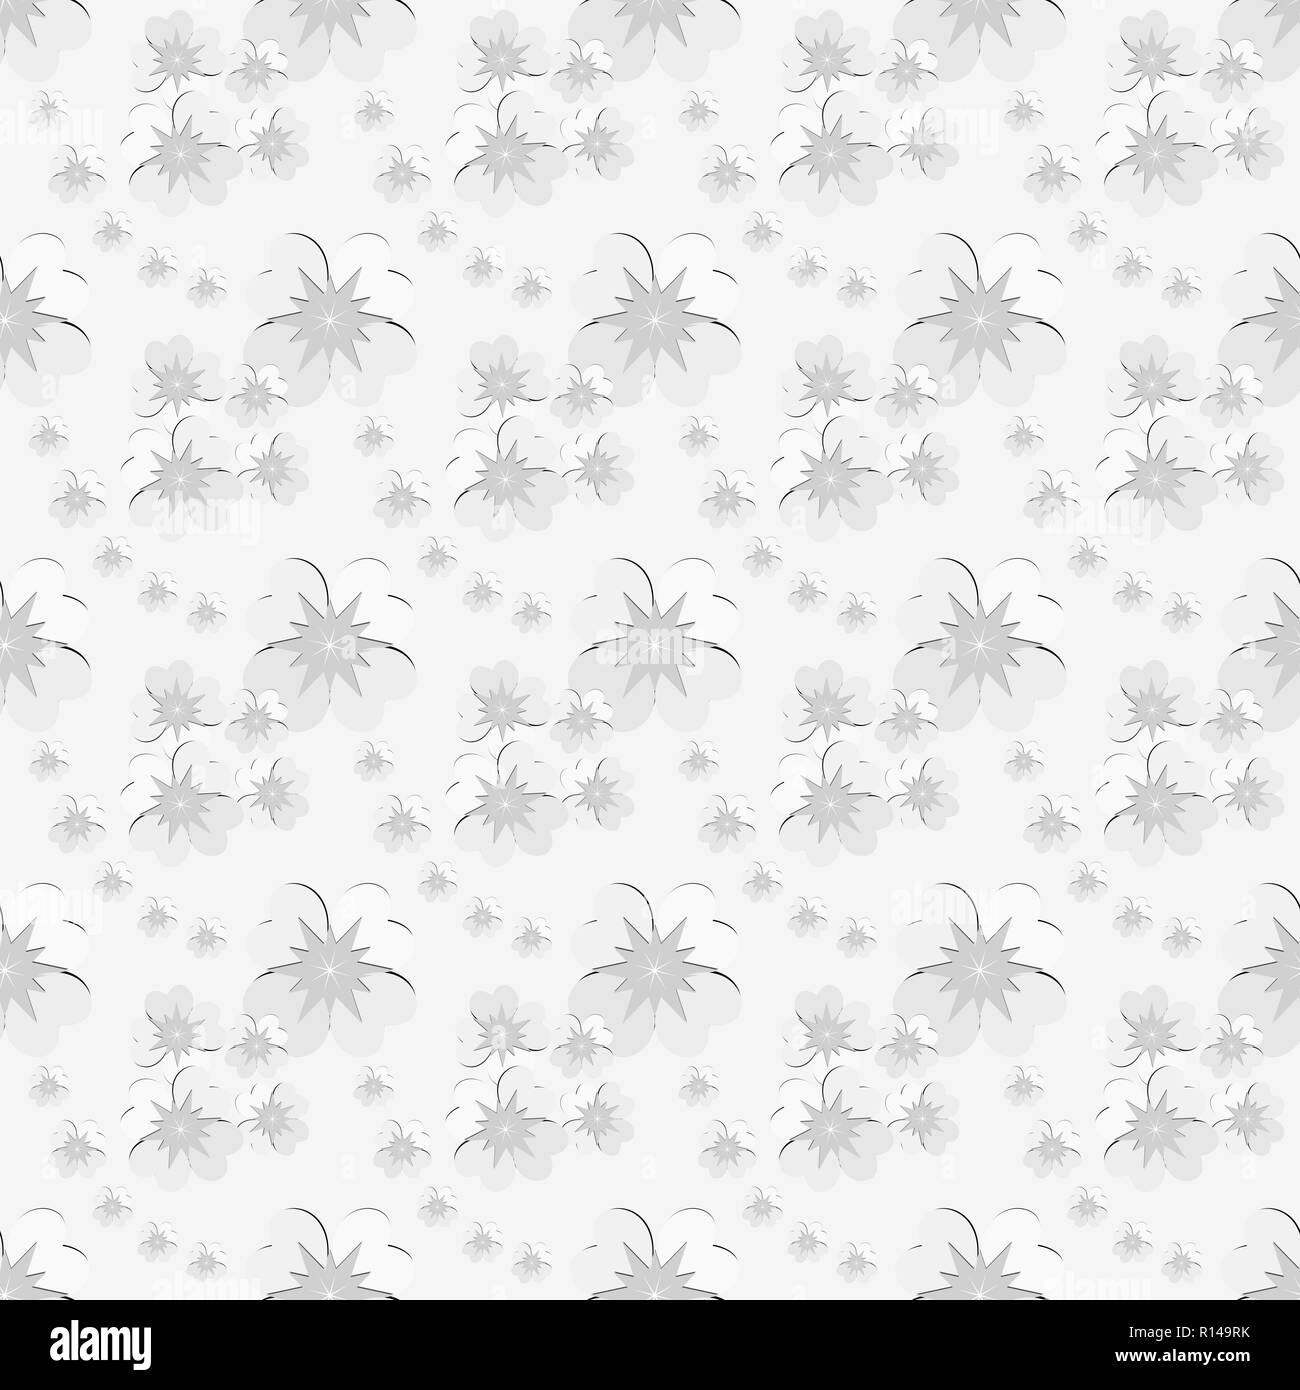 Seamless Floral Pattern Of White Flowers With Gray Pollen Silver